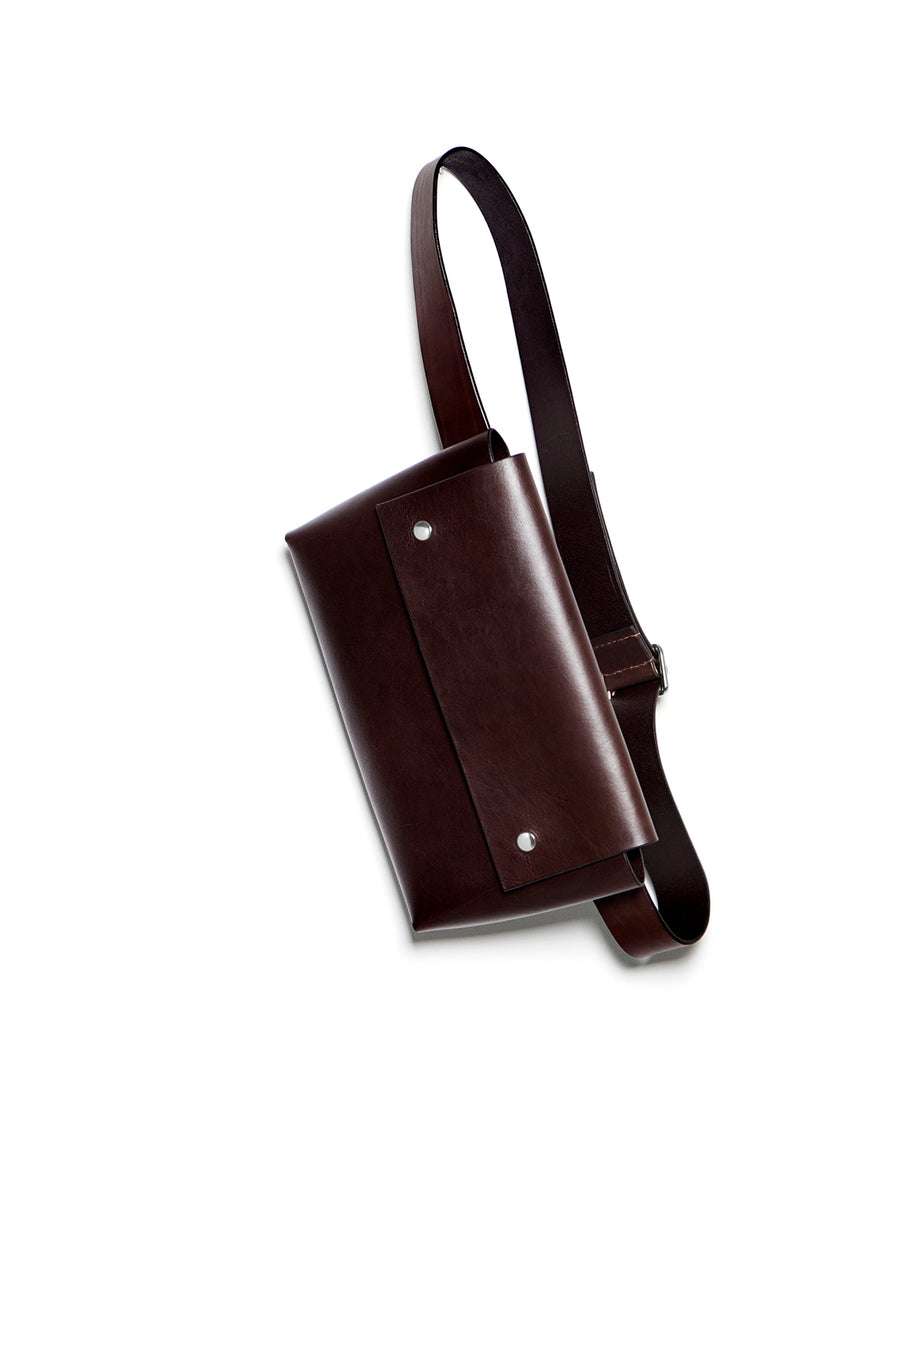 PETRINE bumbag (dark brown)